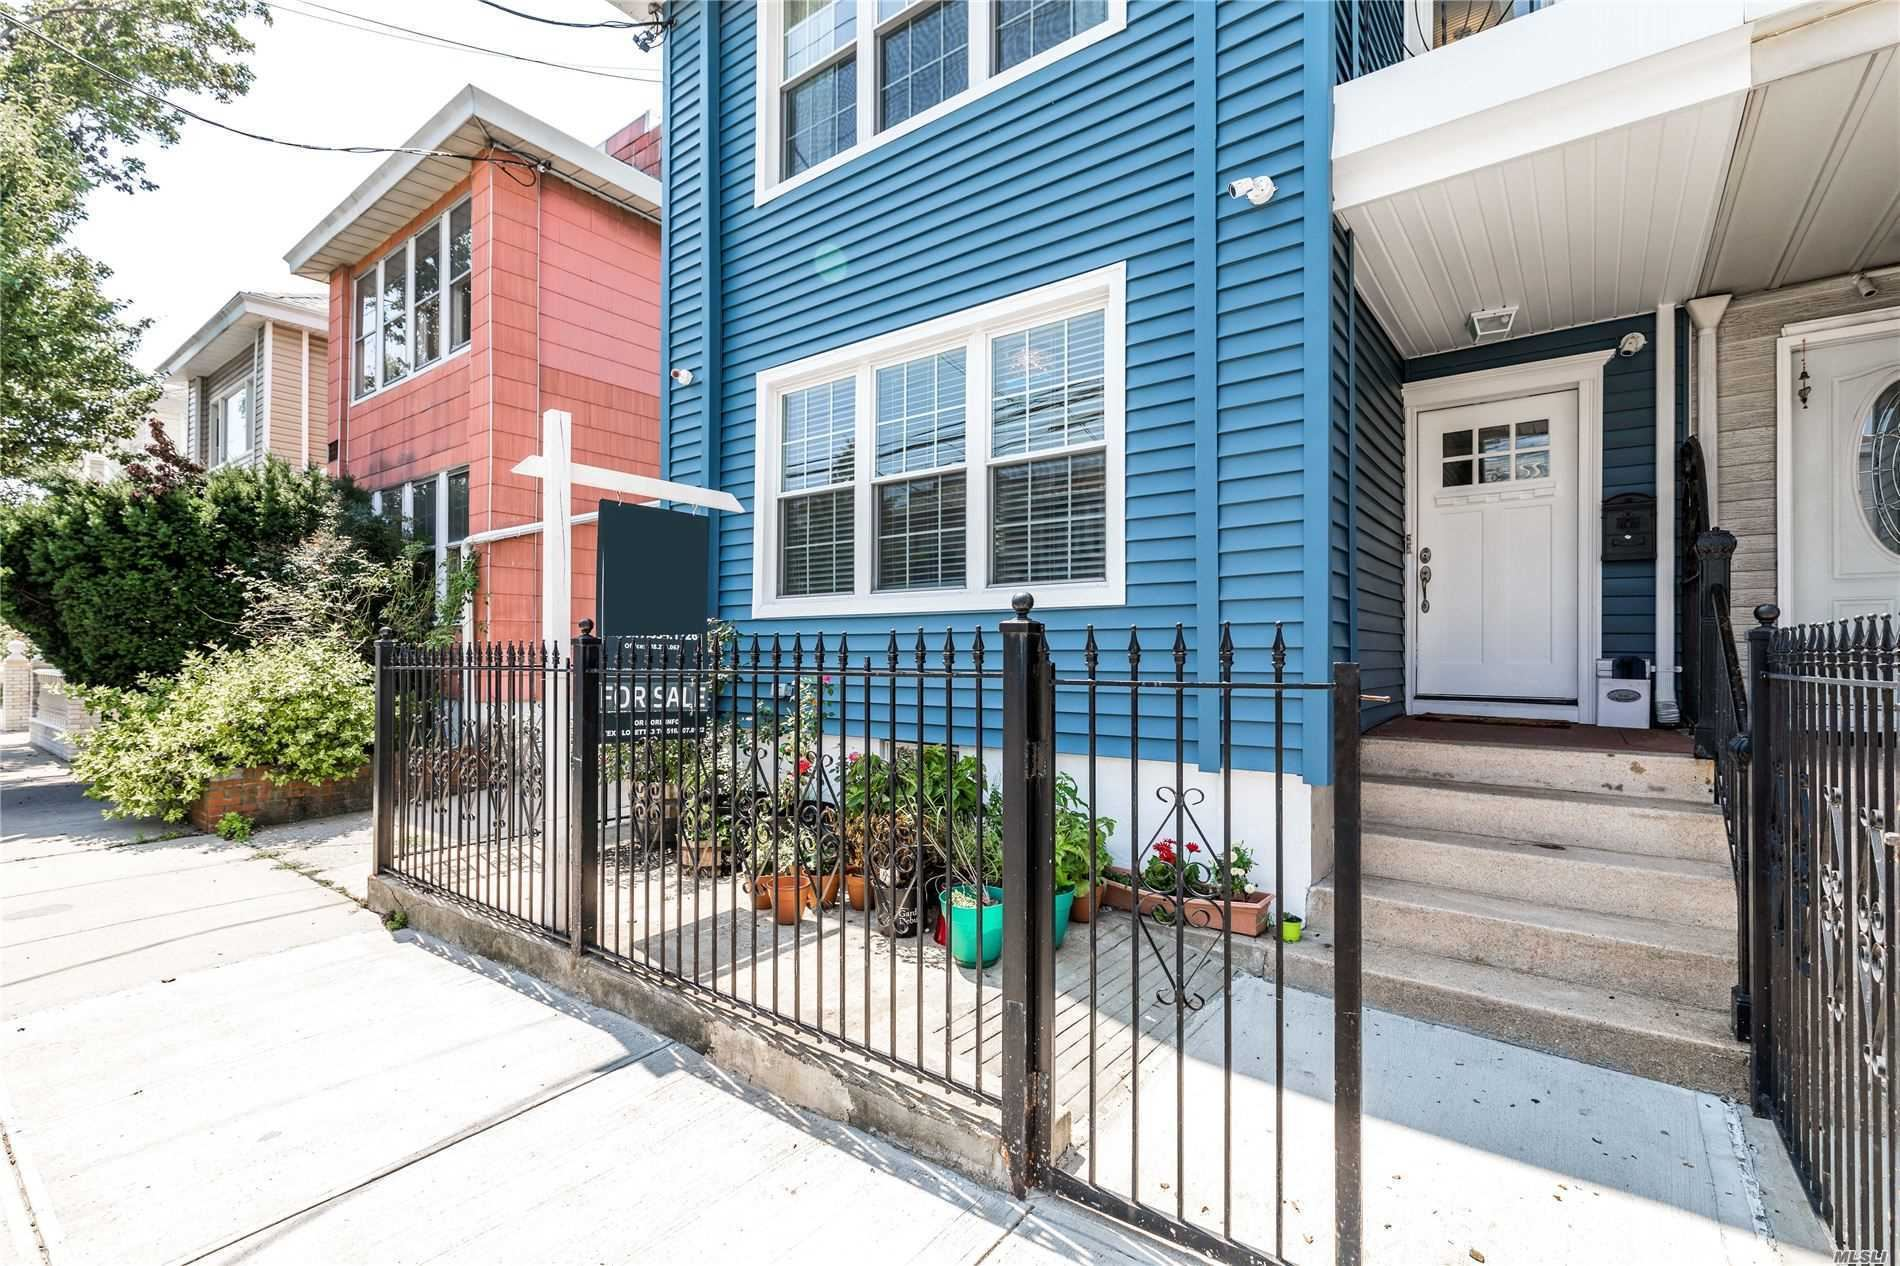 111-30 112th Street, S. Ozone Park, NY 11420 - MLS#: 3237966